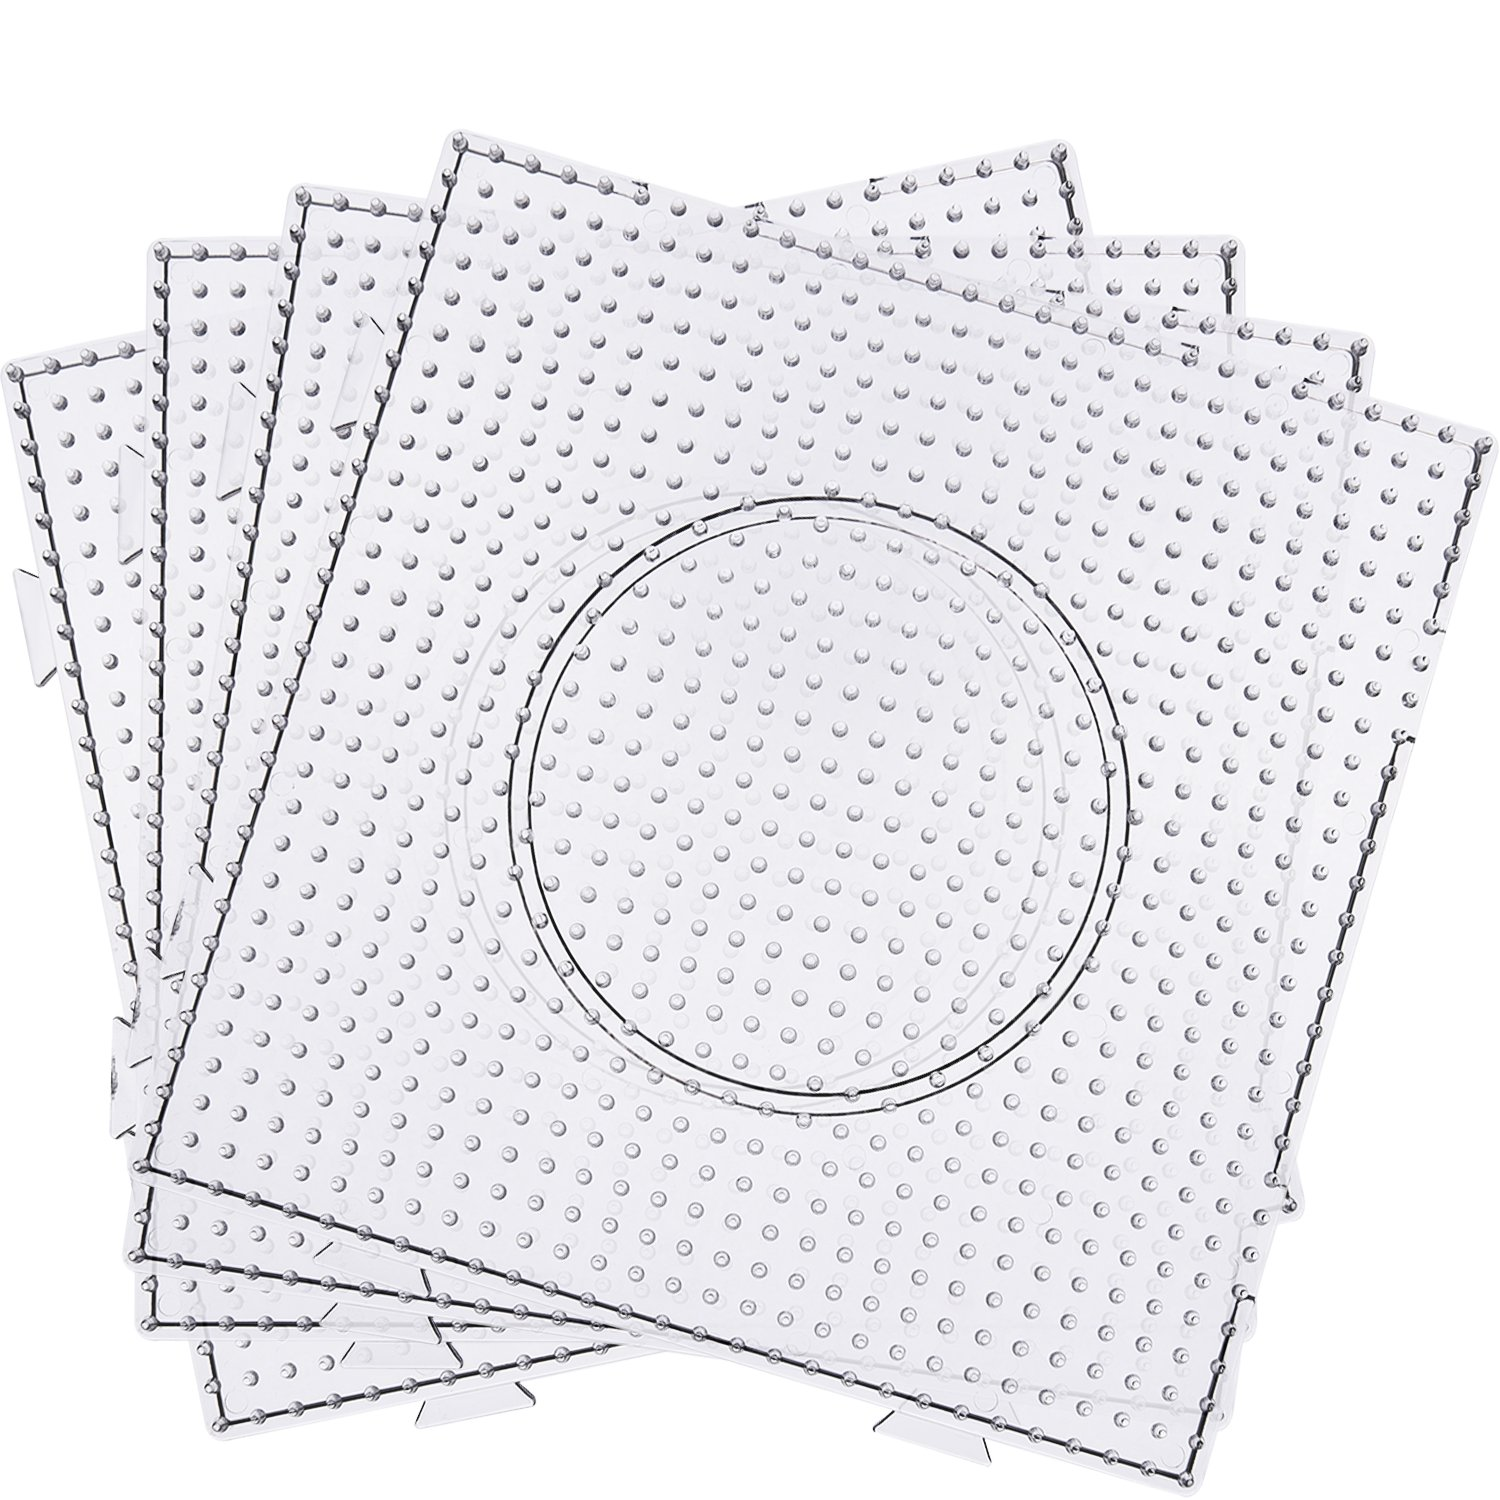 Maxdot 5 mm Large Square Fuse Beads Boards Clear Plastic Pegboards for Kids Craft Beads (4 Pieces)